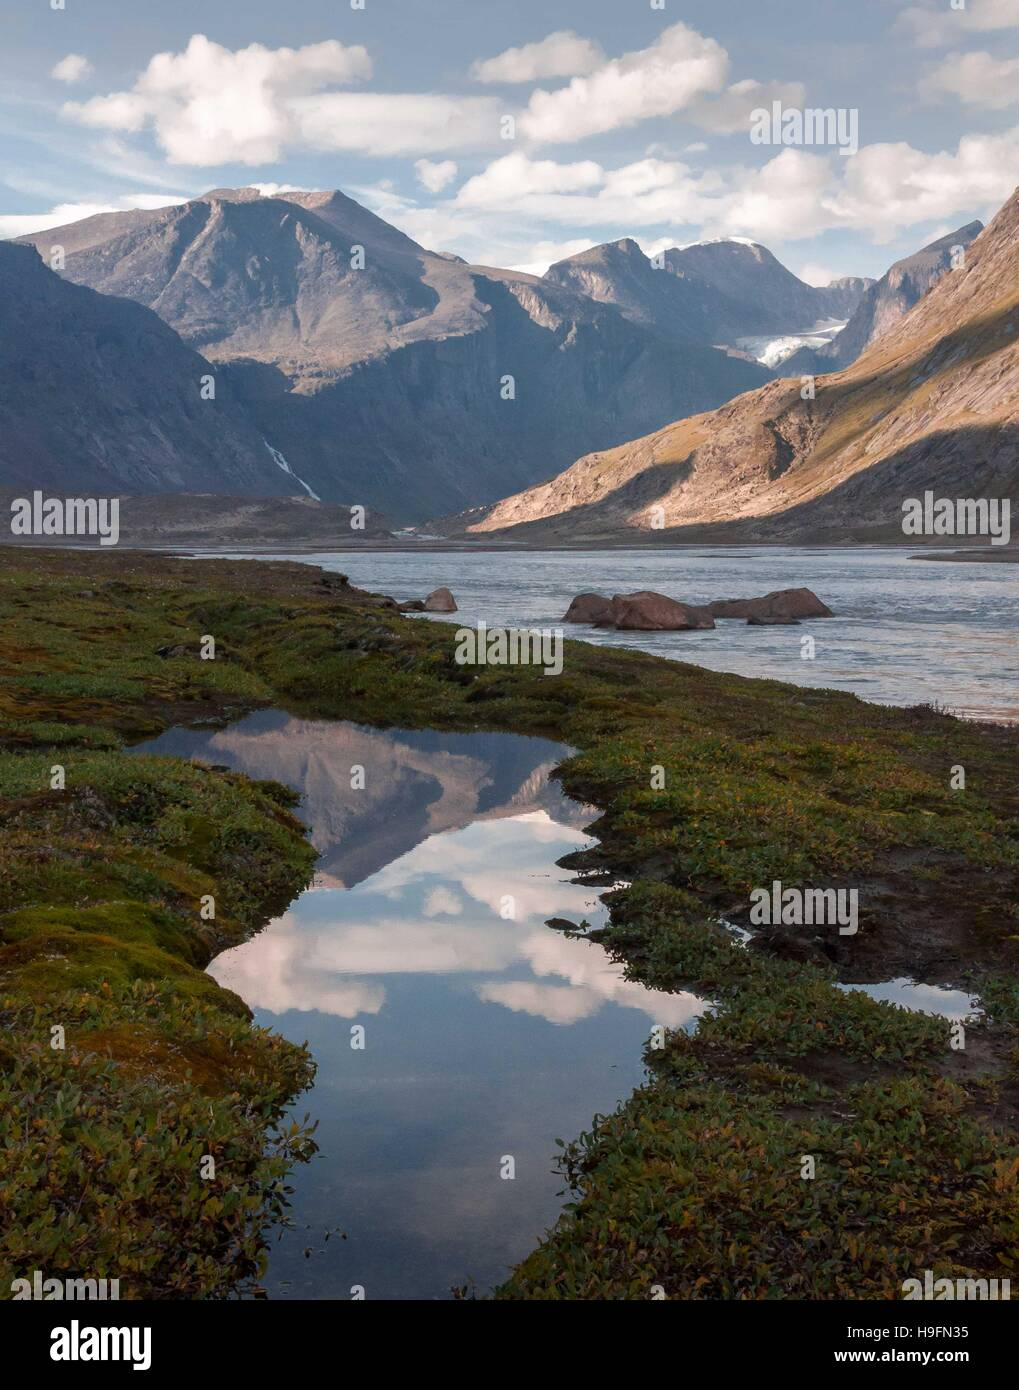 Auyuittuq National Park scenery, Nunavut, Canada. - Stock Image